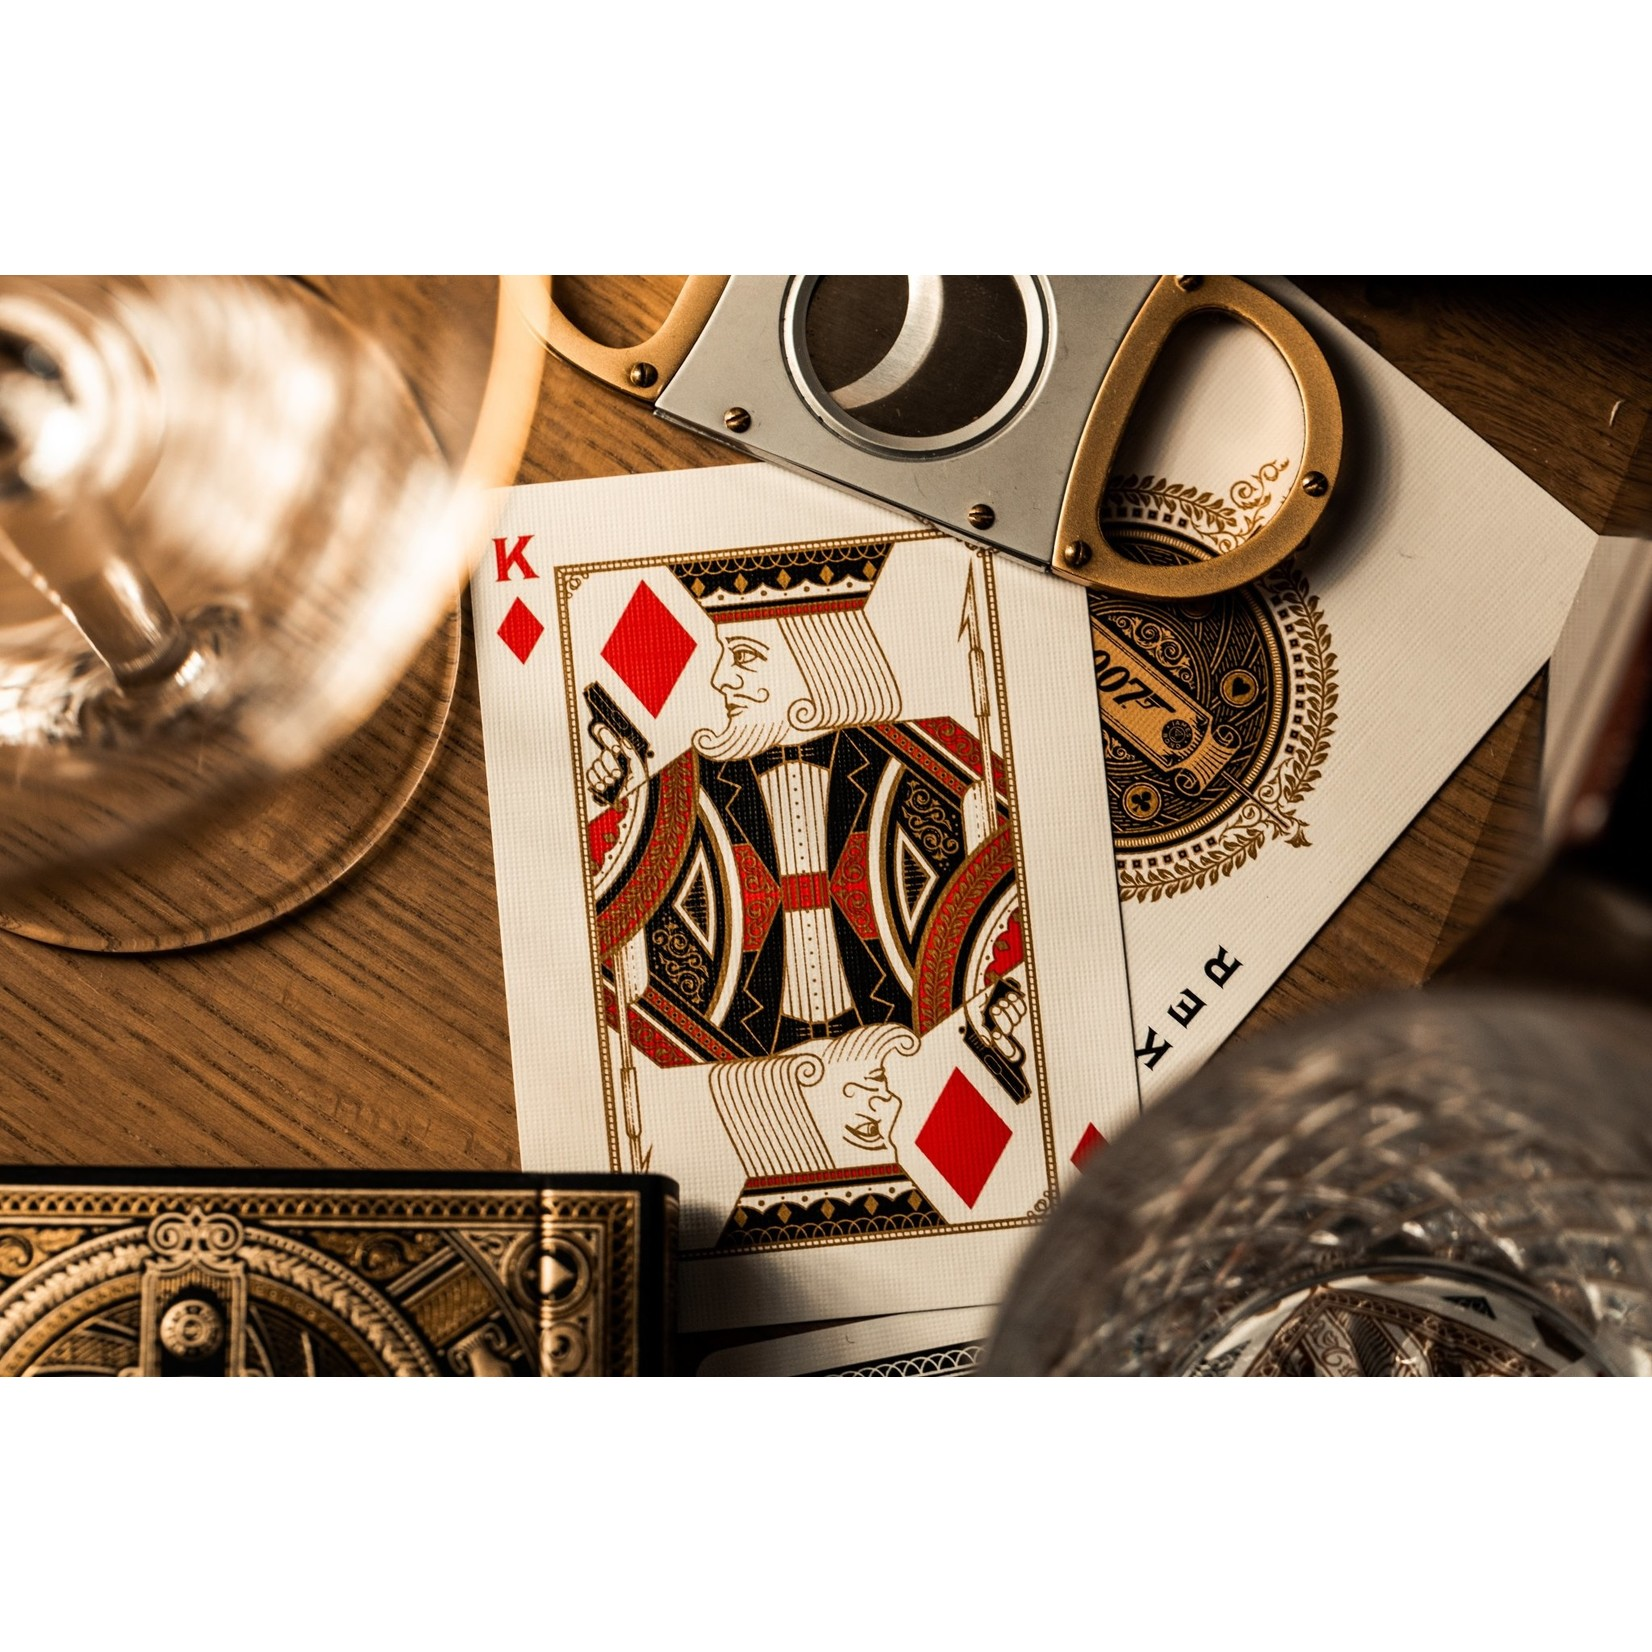 theory11 Theory 11 James Bond Playing Cards